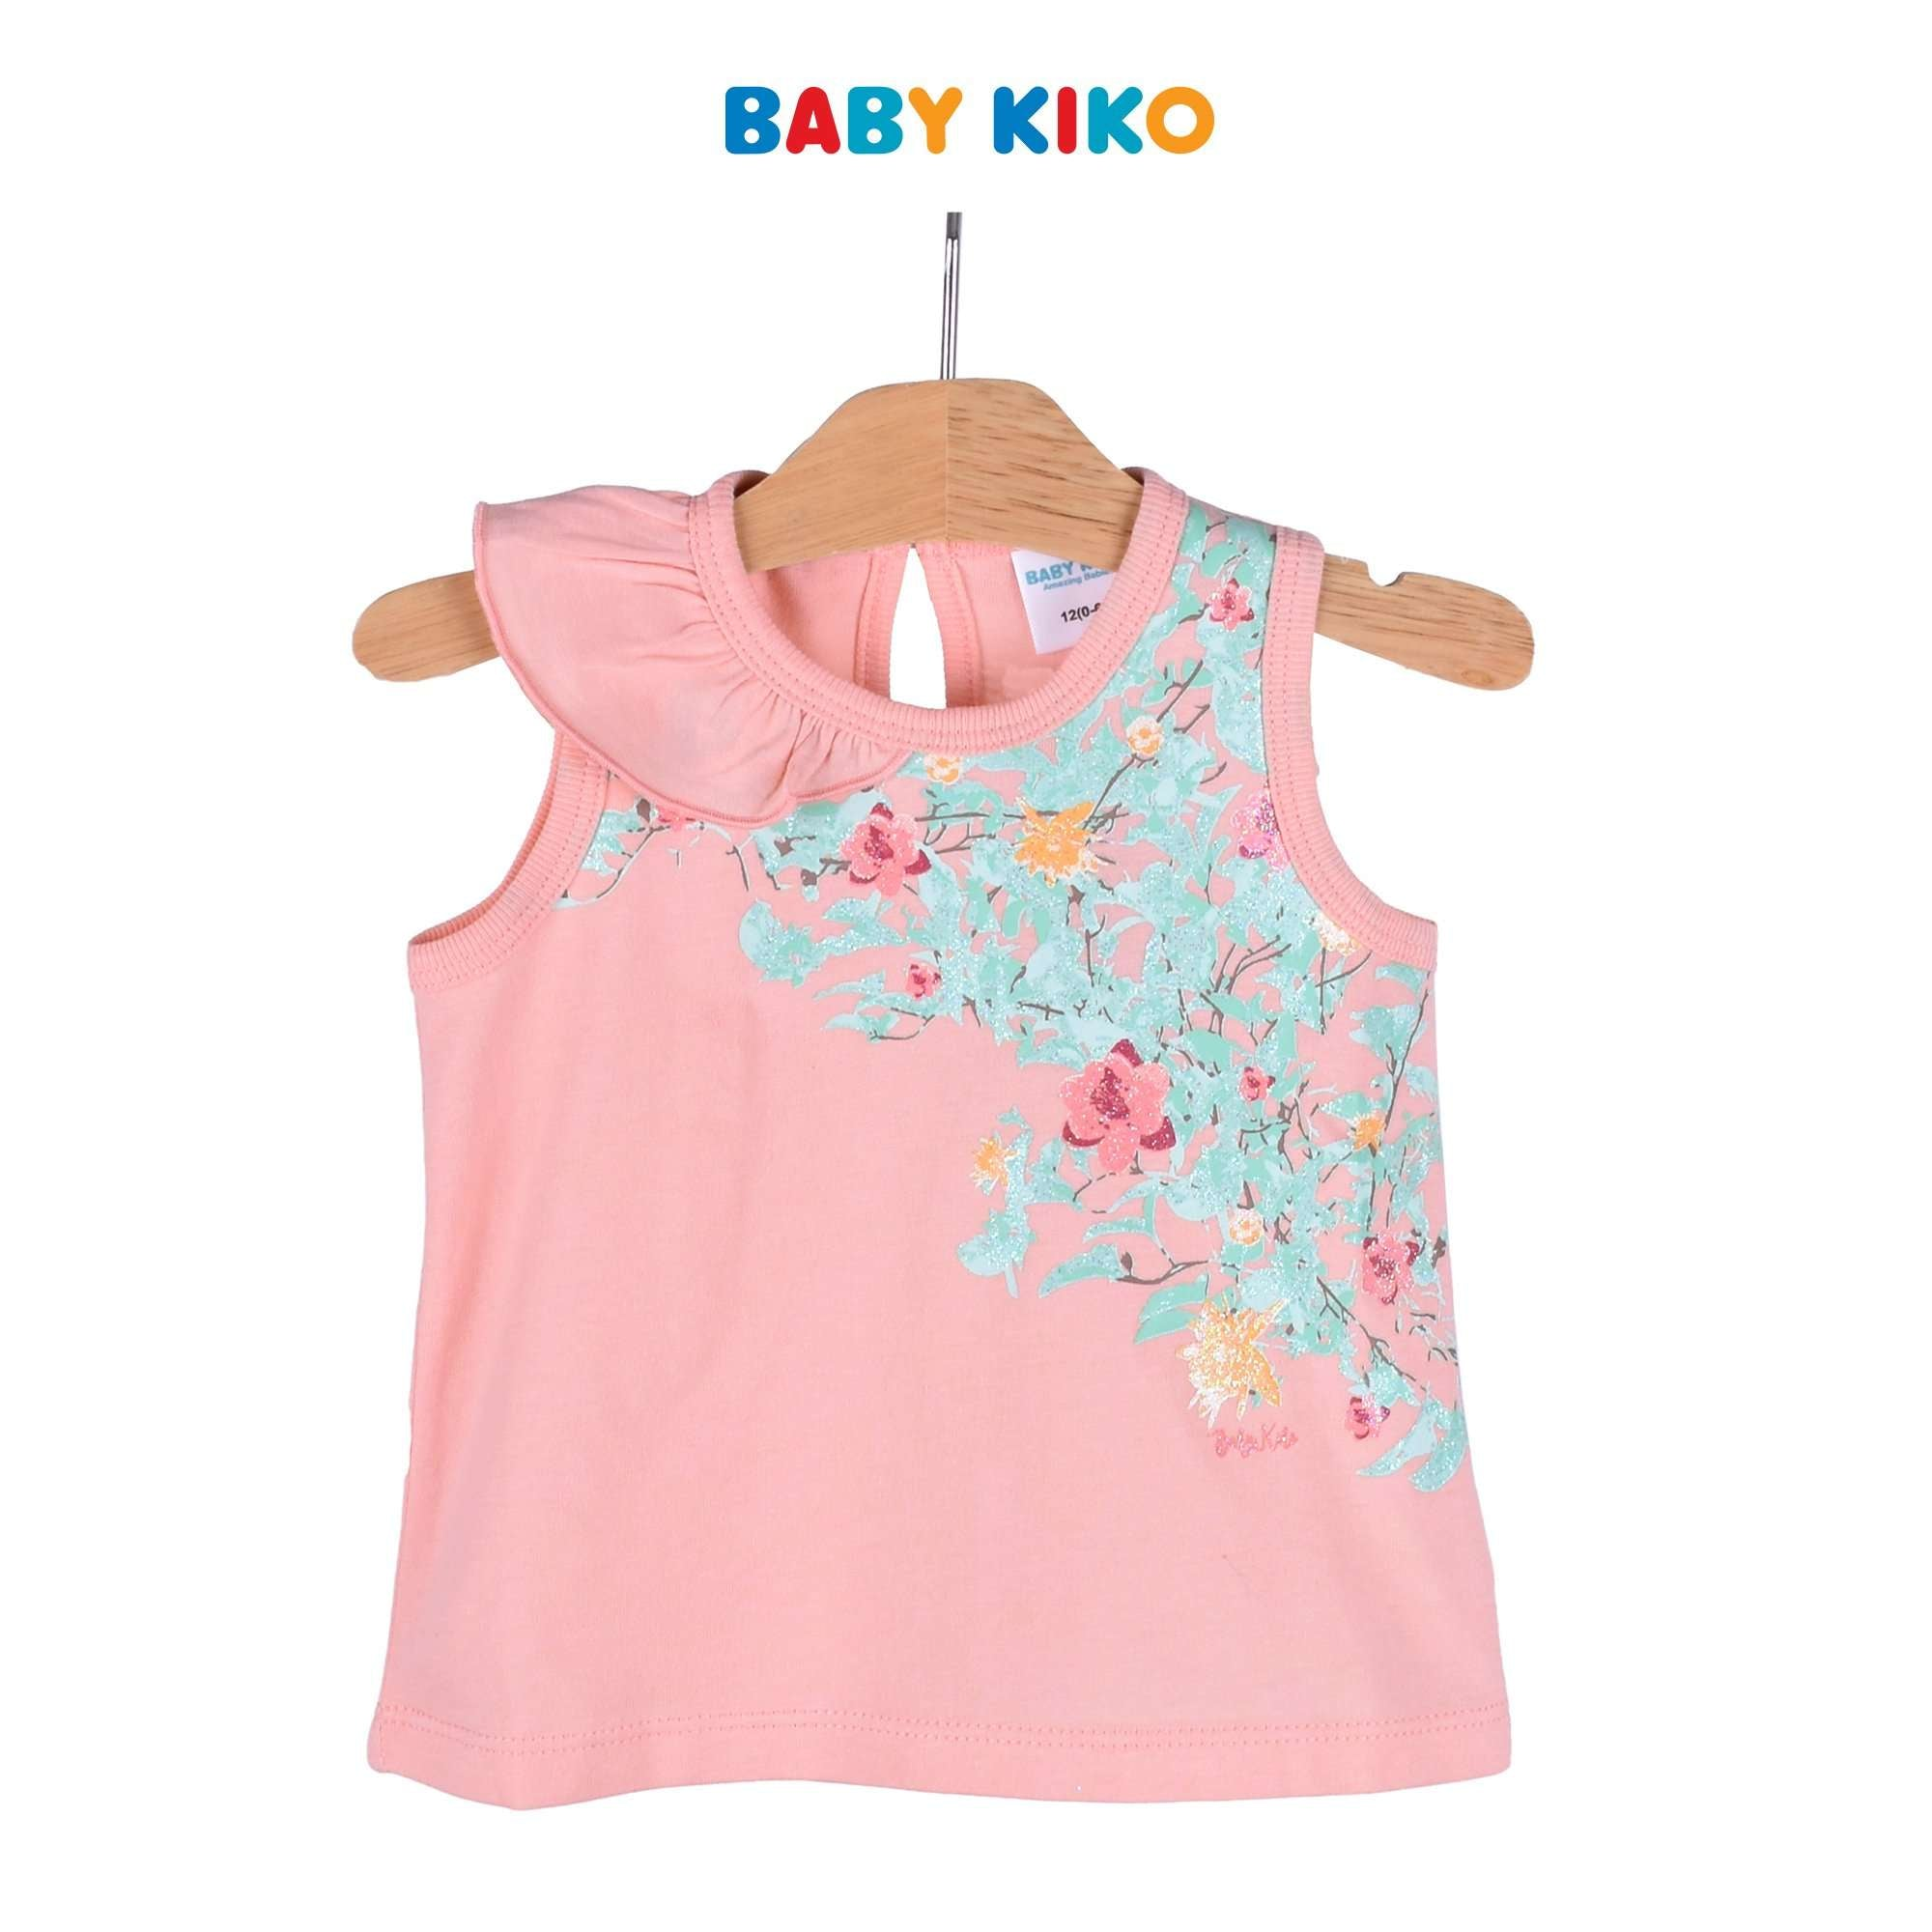 Baby KIKO Baby Girl Sleeveless Tee - Peach 330054-101 : Buy Baby KIKO online at CMG.MY